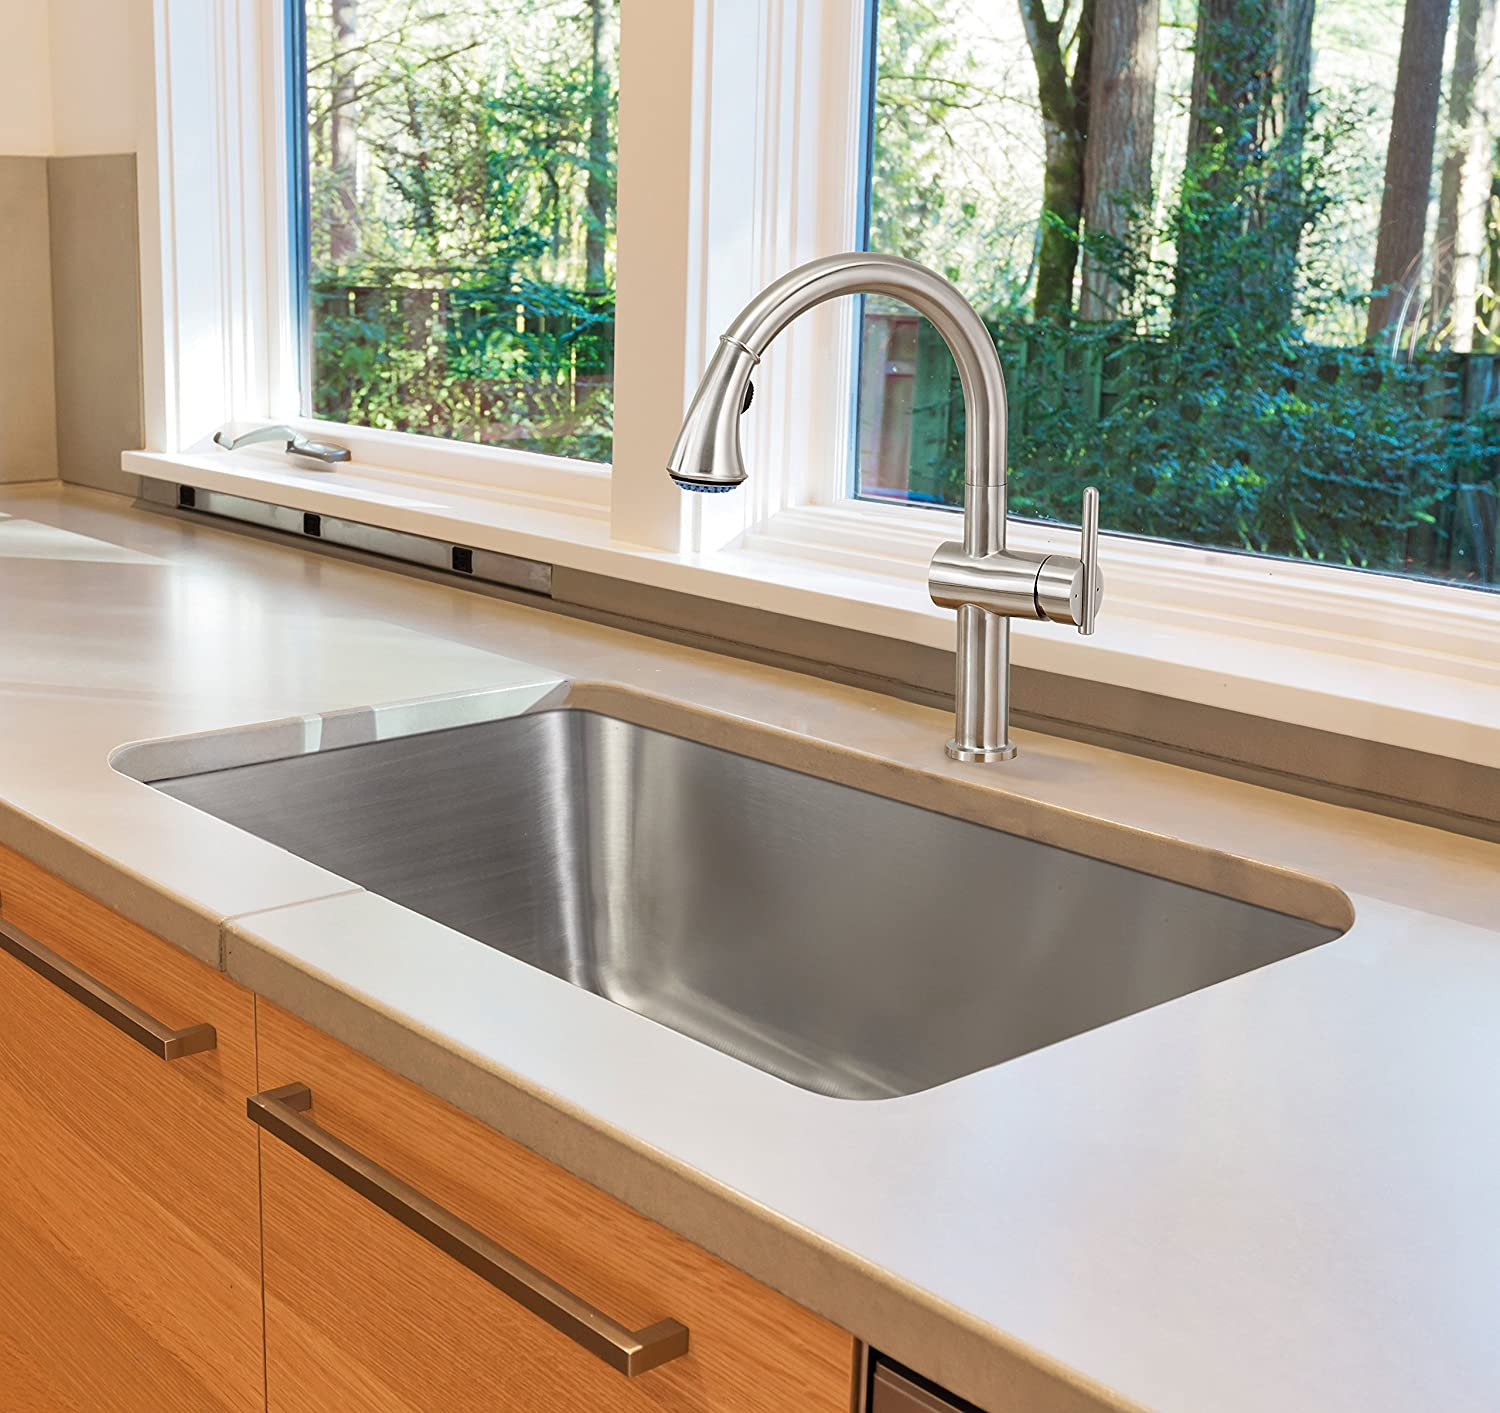 Extra Thick 16 Gauge Durable & Unbeatable Deal 31 inch Big Single Bowl Undermount Stainless Steel Kitchen Sink 606